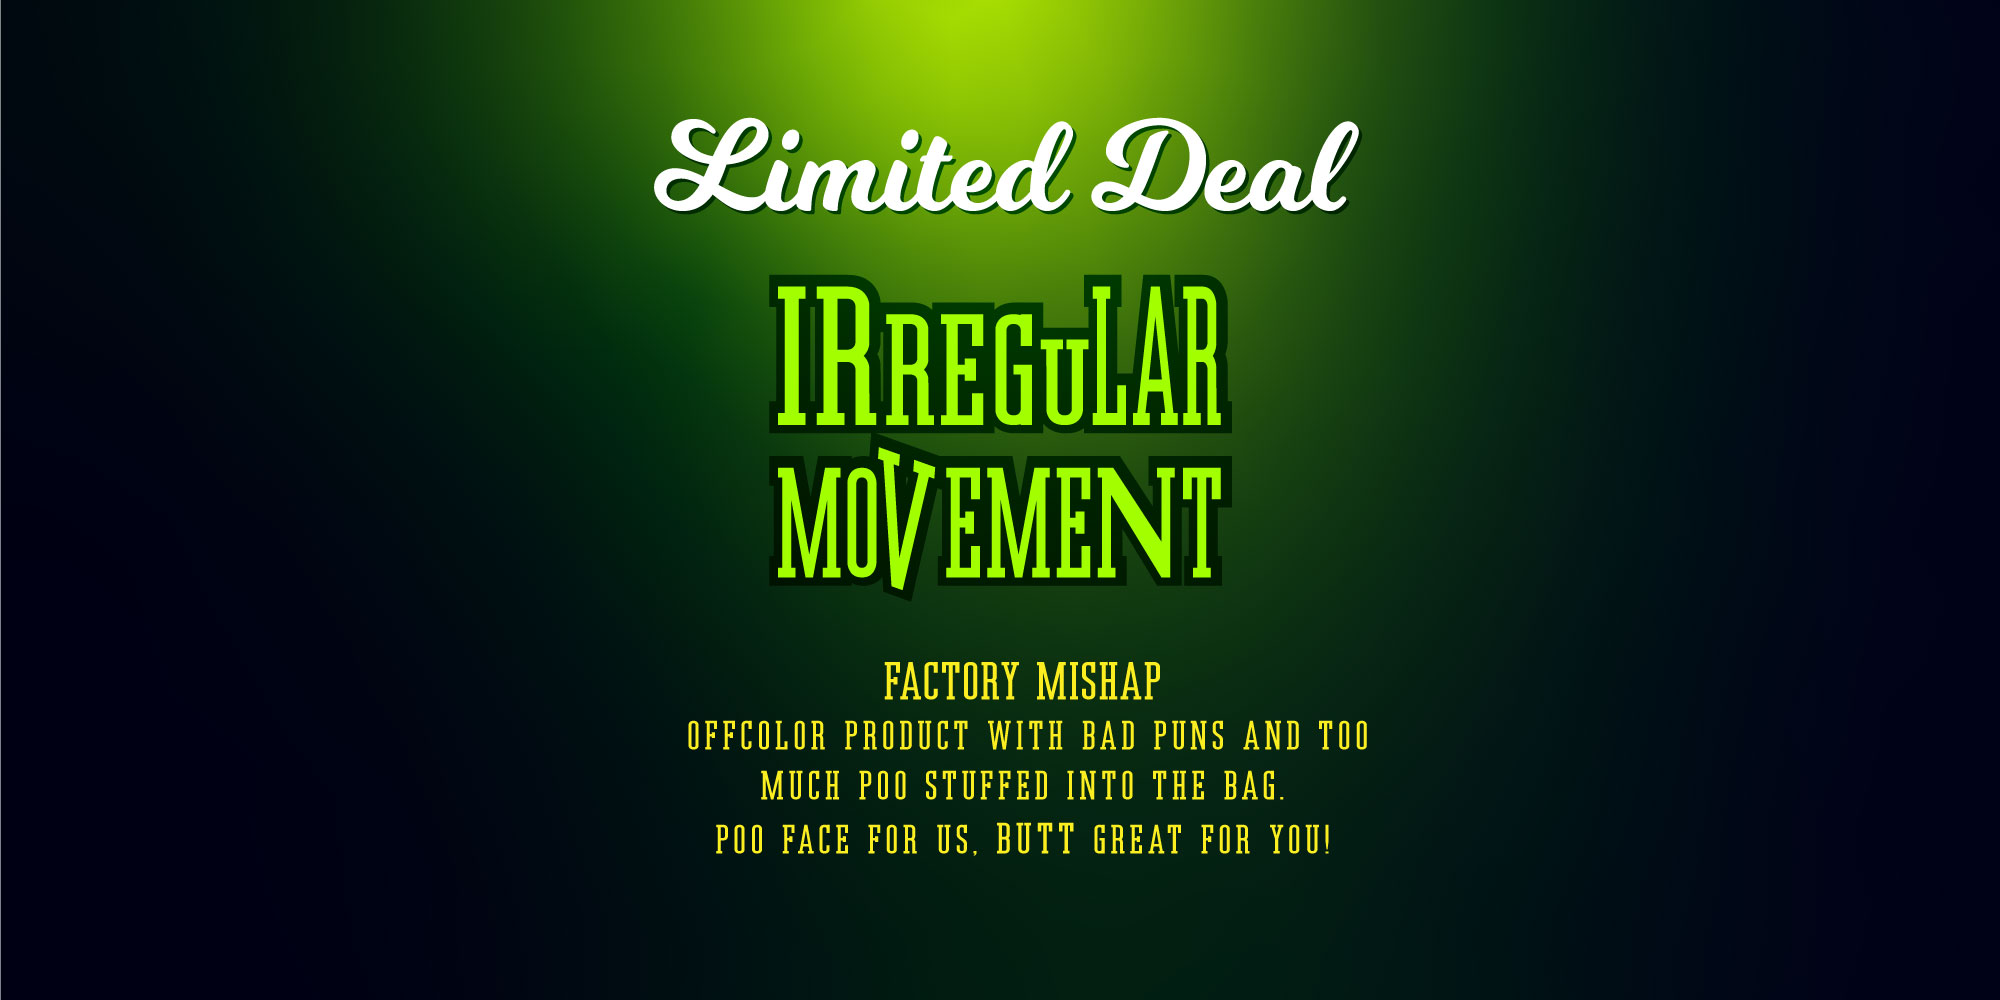 Limited deal irregular movement. We had a factory mishap probably CoVid related that resulted in offcolor product and an inconsistent stuffing of the bags with all being at least what they should be to over double stuffed. Our mishap your saving while supplies last